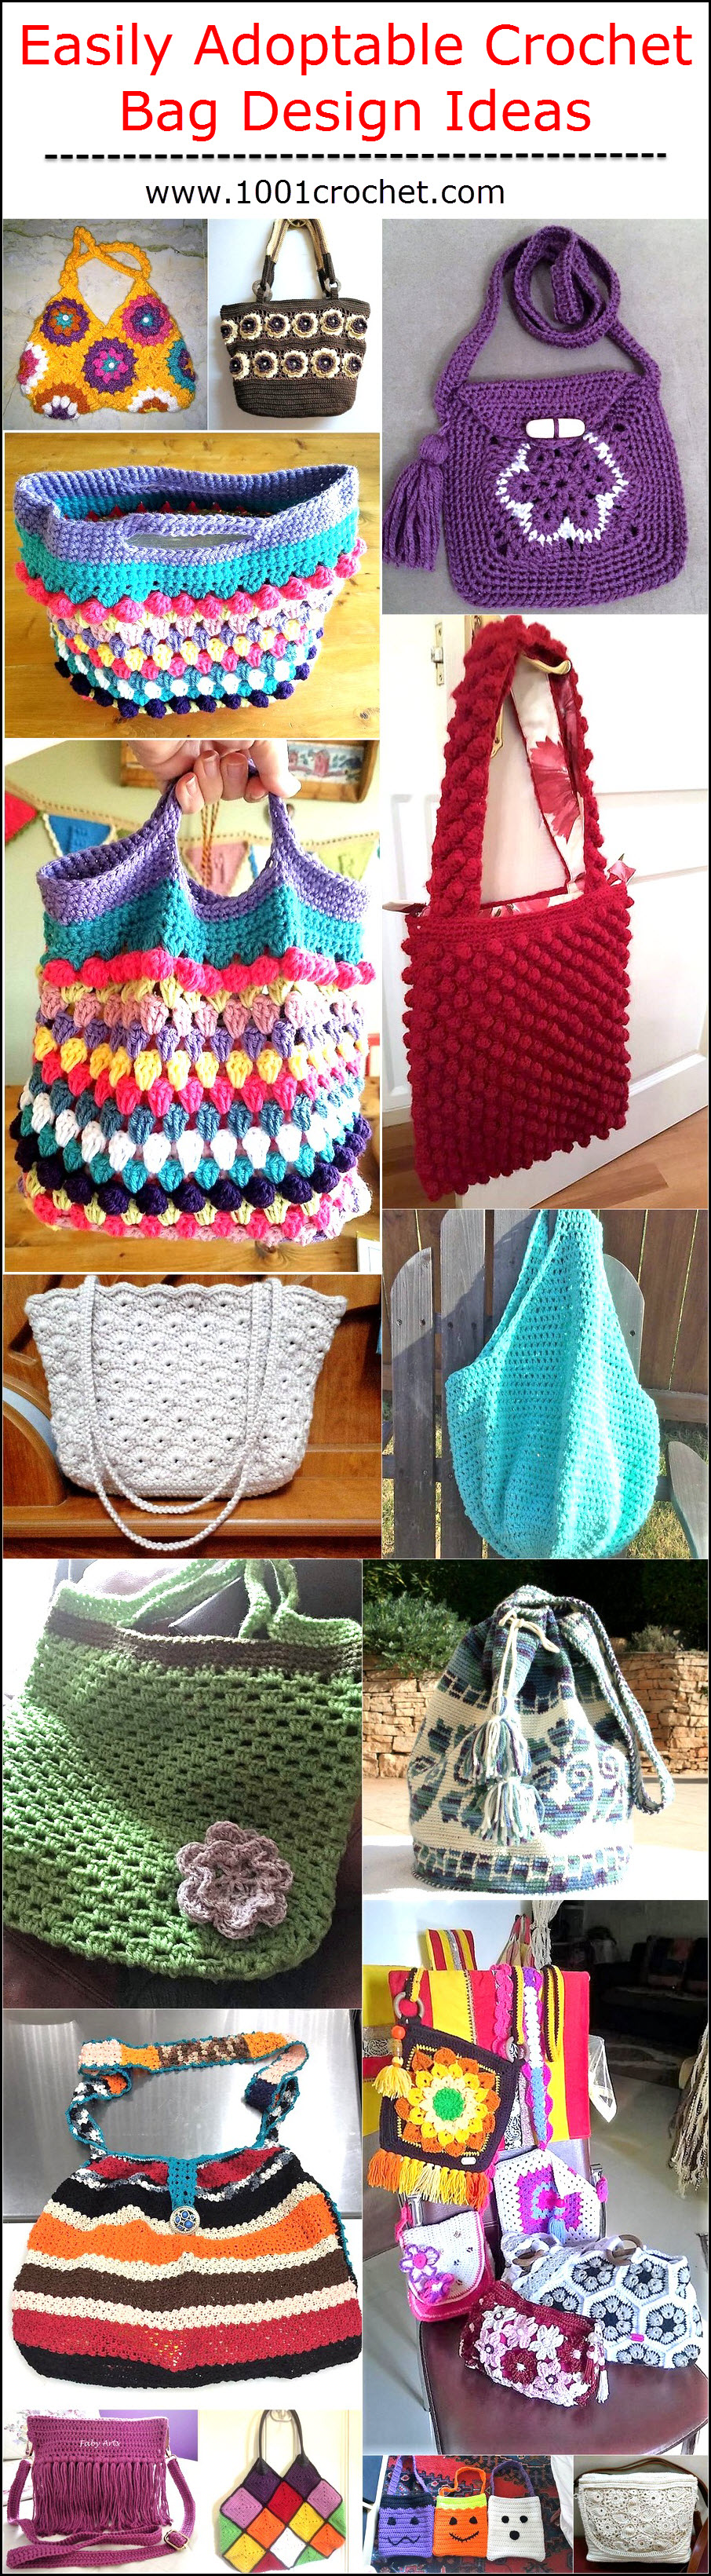 easily-adoptable-crochet-bag-design-ideas